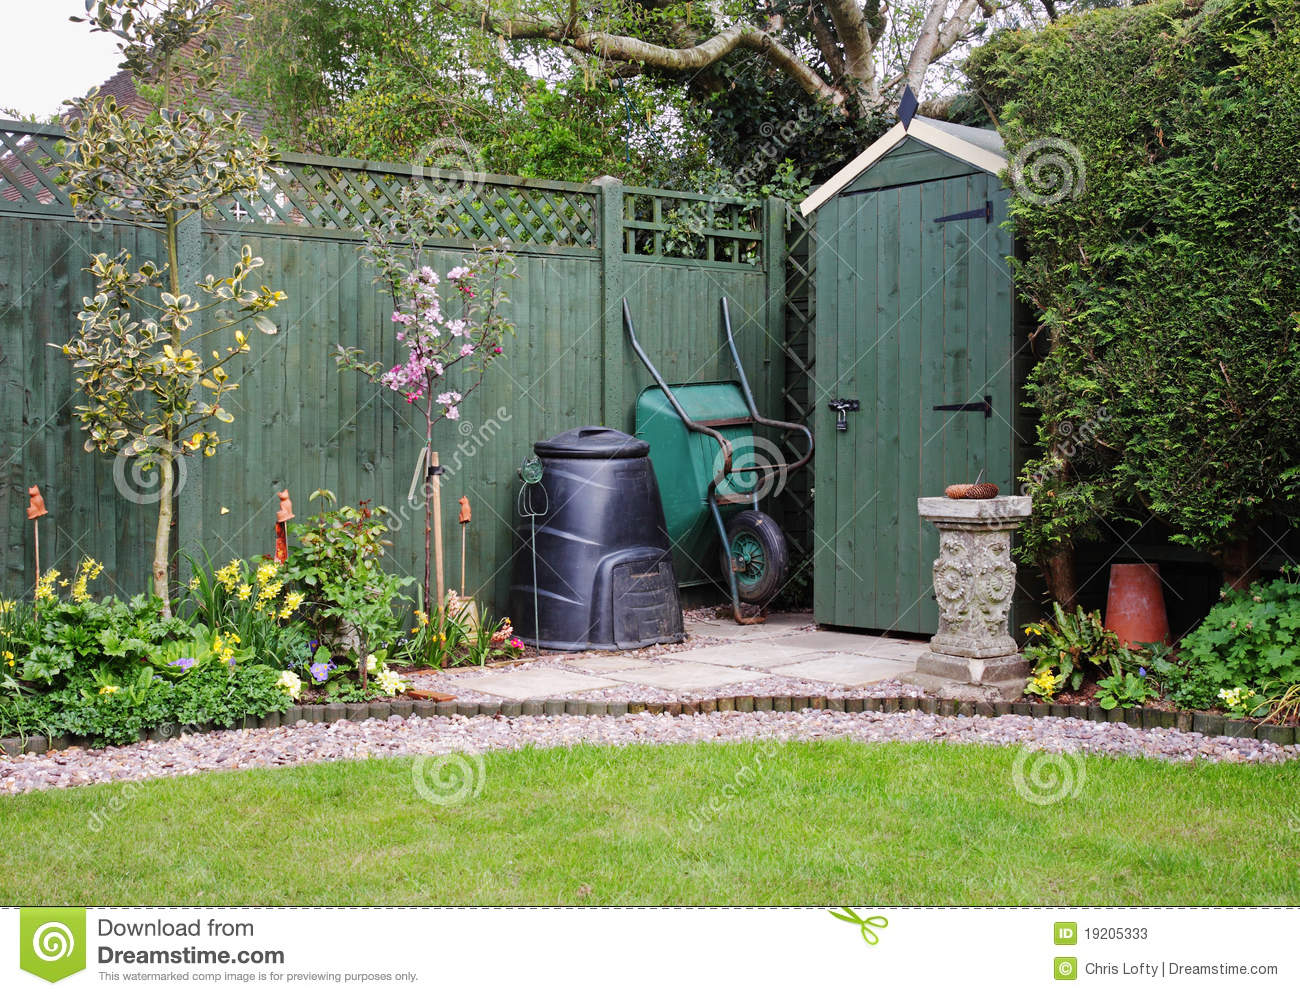 Garden shed in an english garden with compost bin stock for Compost tuin